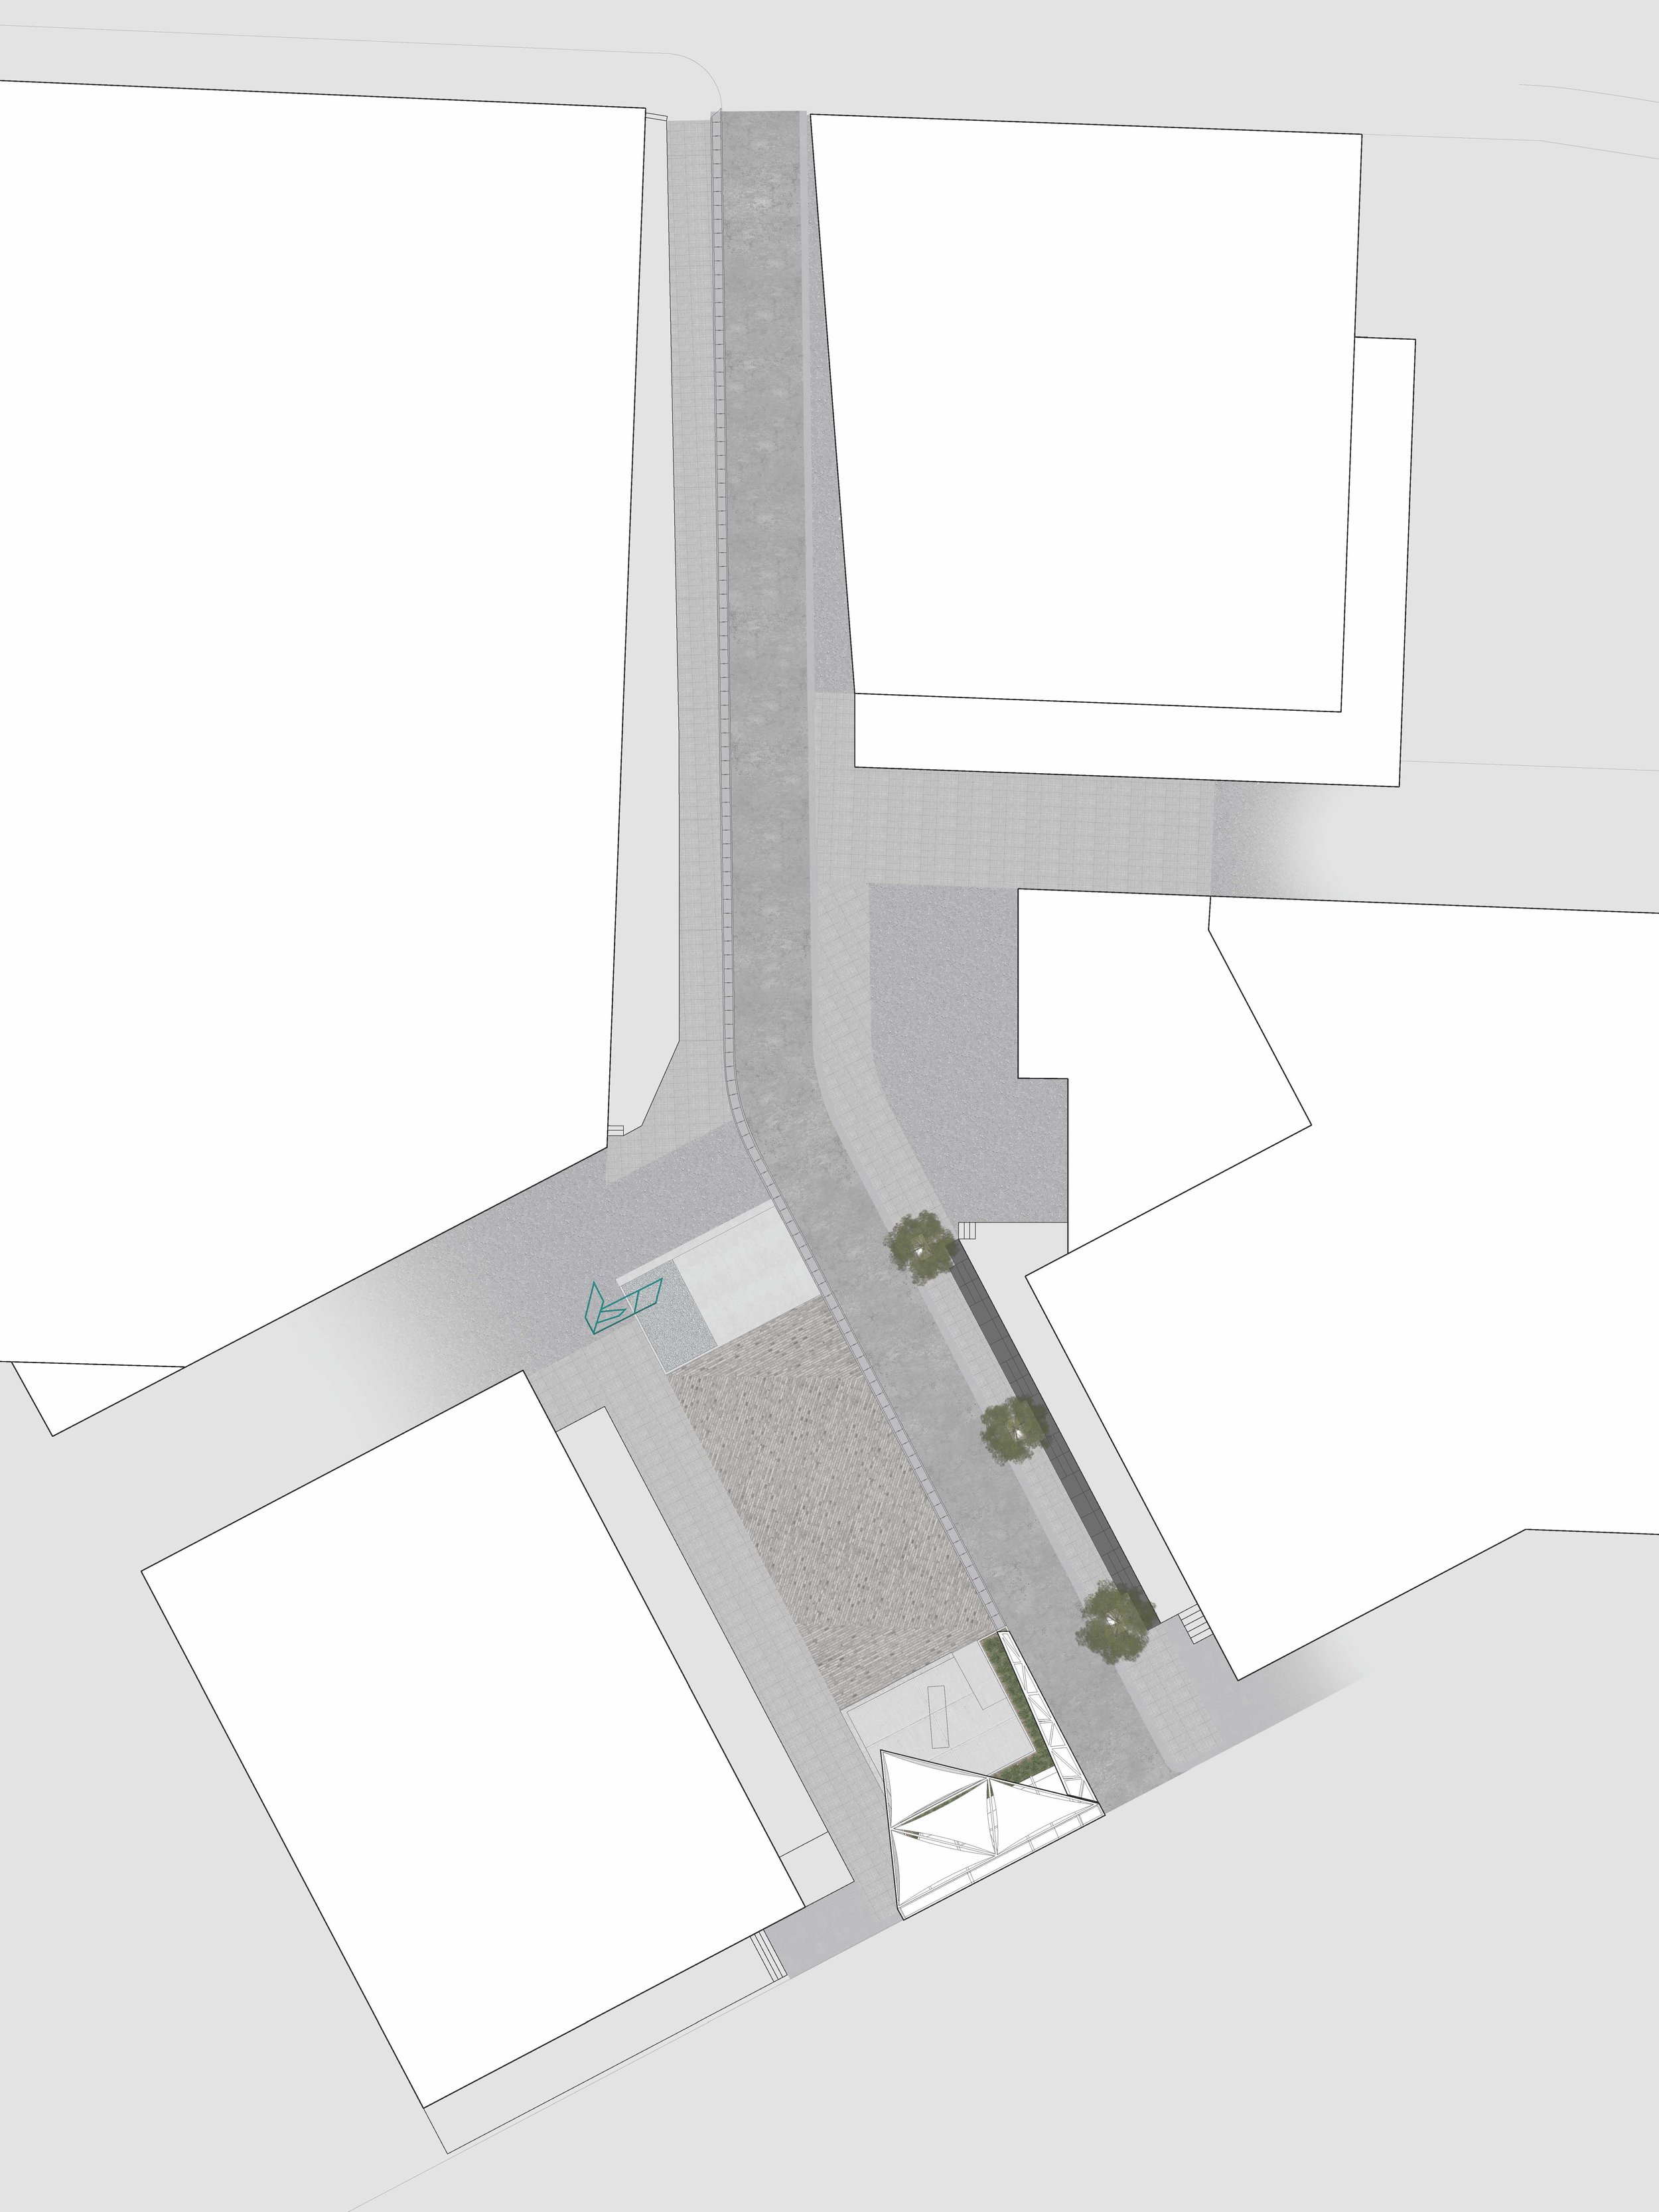 The illustration demonstrates the proposed design for the site.